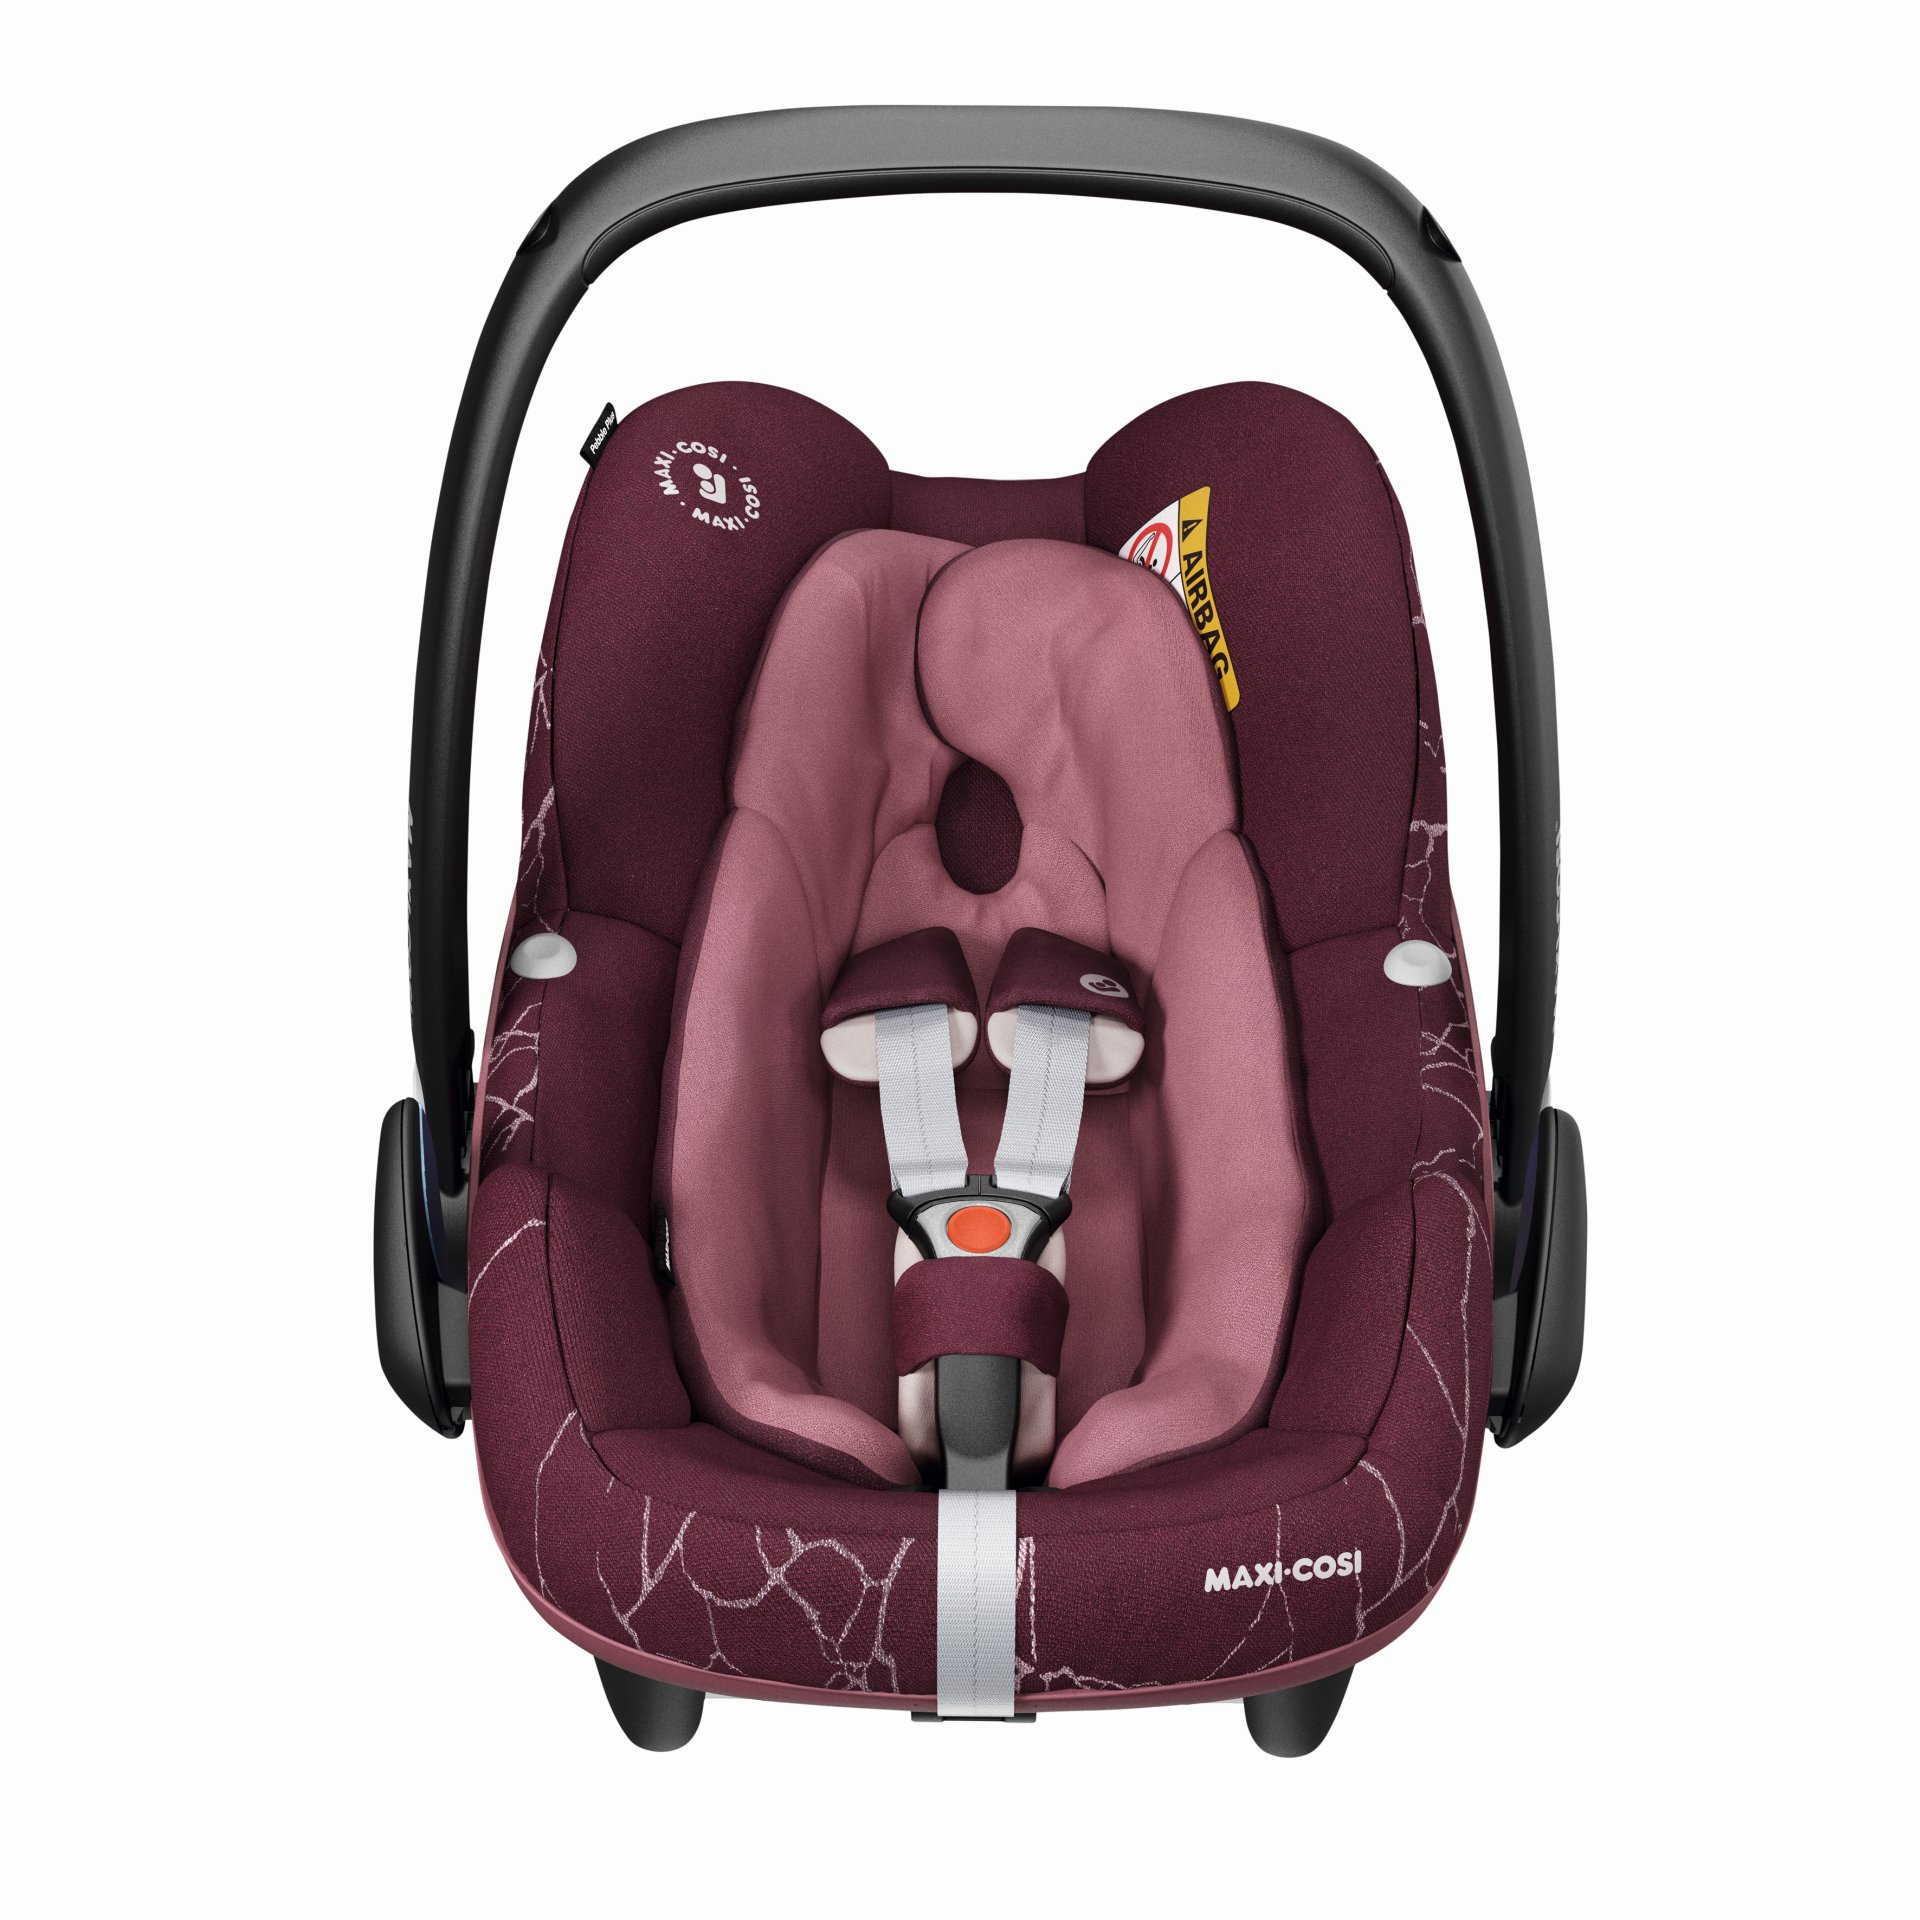 maxi cosi babyschale pebble plus 2019 marble plum online kaufen bei kidsroom kindersitze. Black Bedroom Furniture Sets. Home Design Ideas